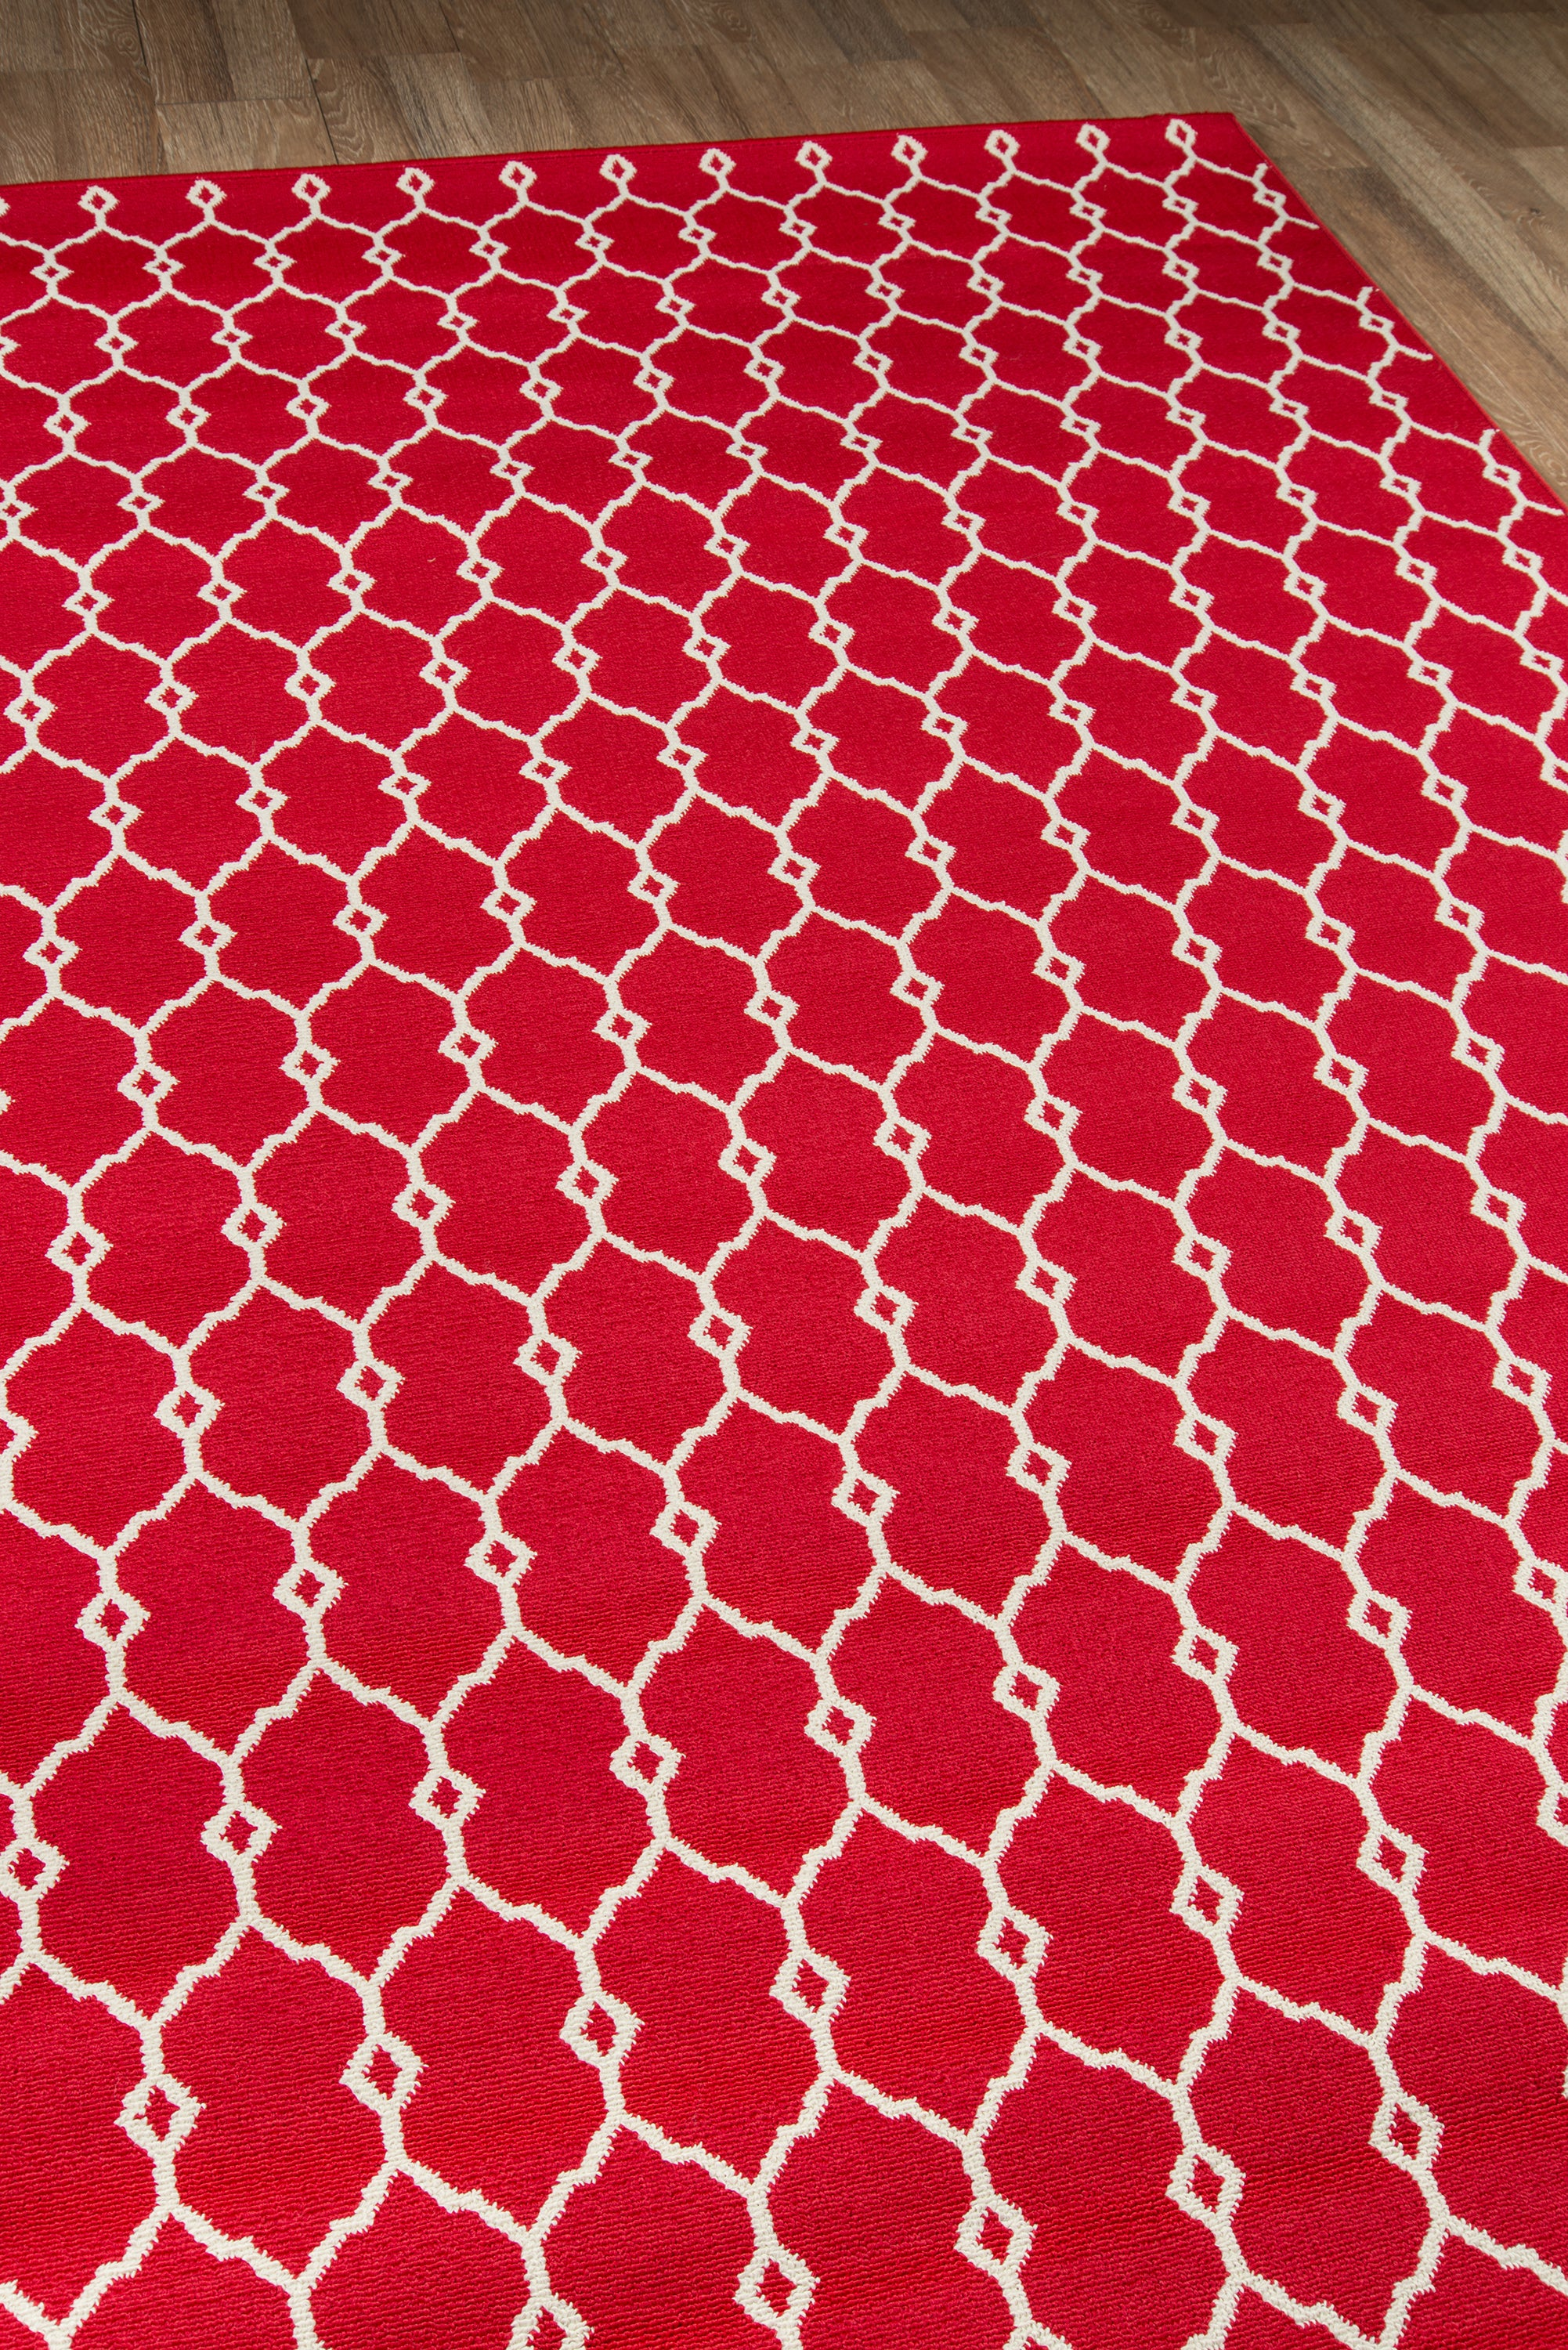 Rectangle Red Geometric Machine Made Synthetics Contemporary recommended for Kitchen, Bedroom, Bathroom, Outdoor, Dining Room, Office, Hallway, Living Room